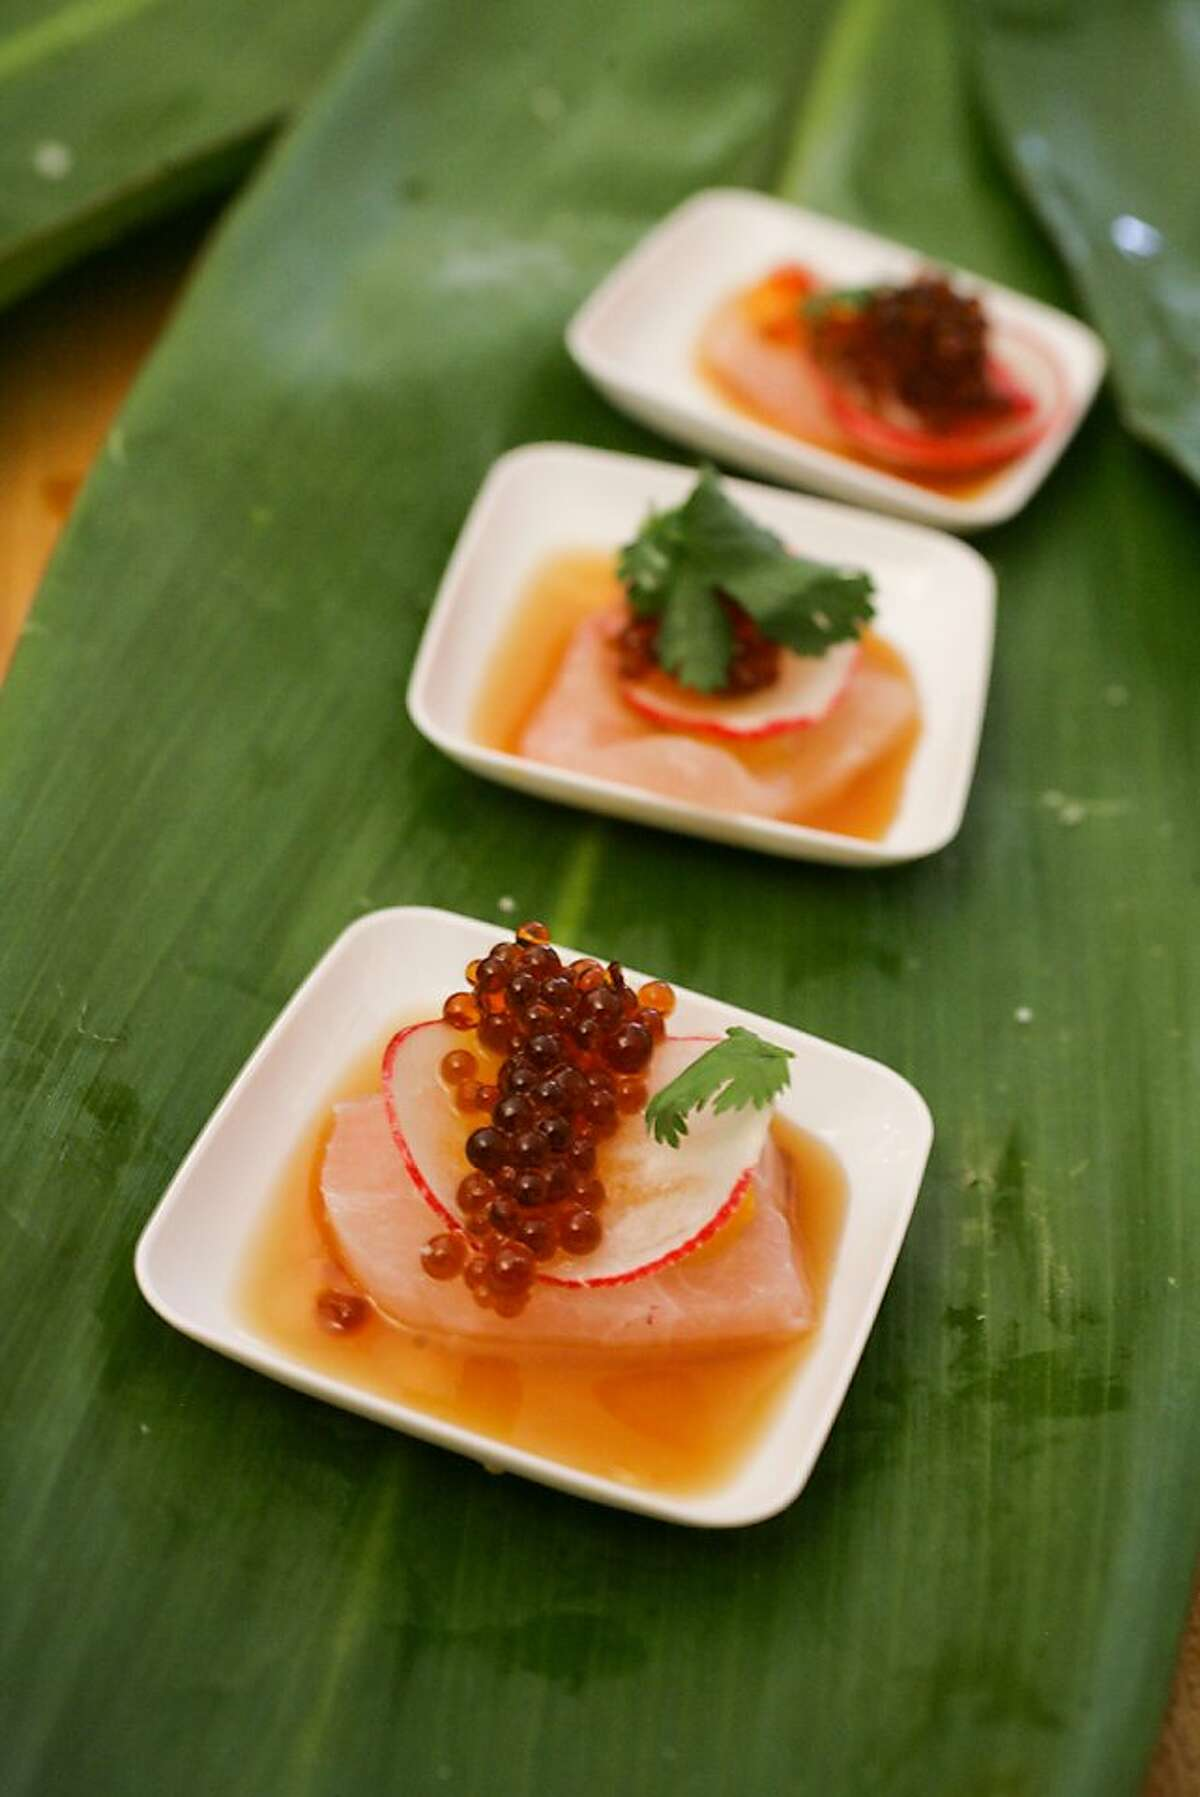 An appetizer served at the Lexus Grand Tasting during the 2011 Pebble Beach Food and Wine Festival.